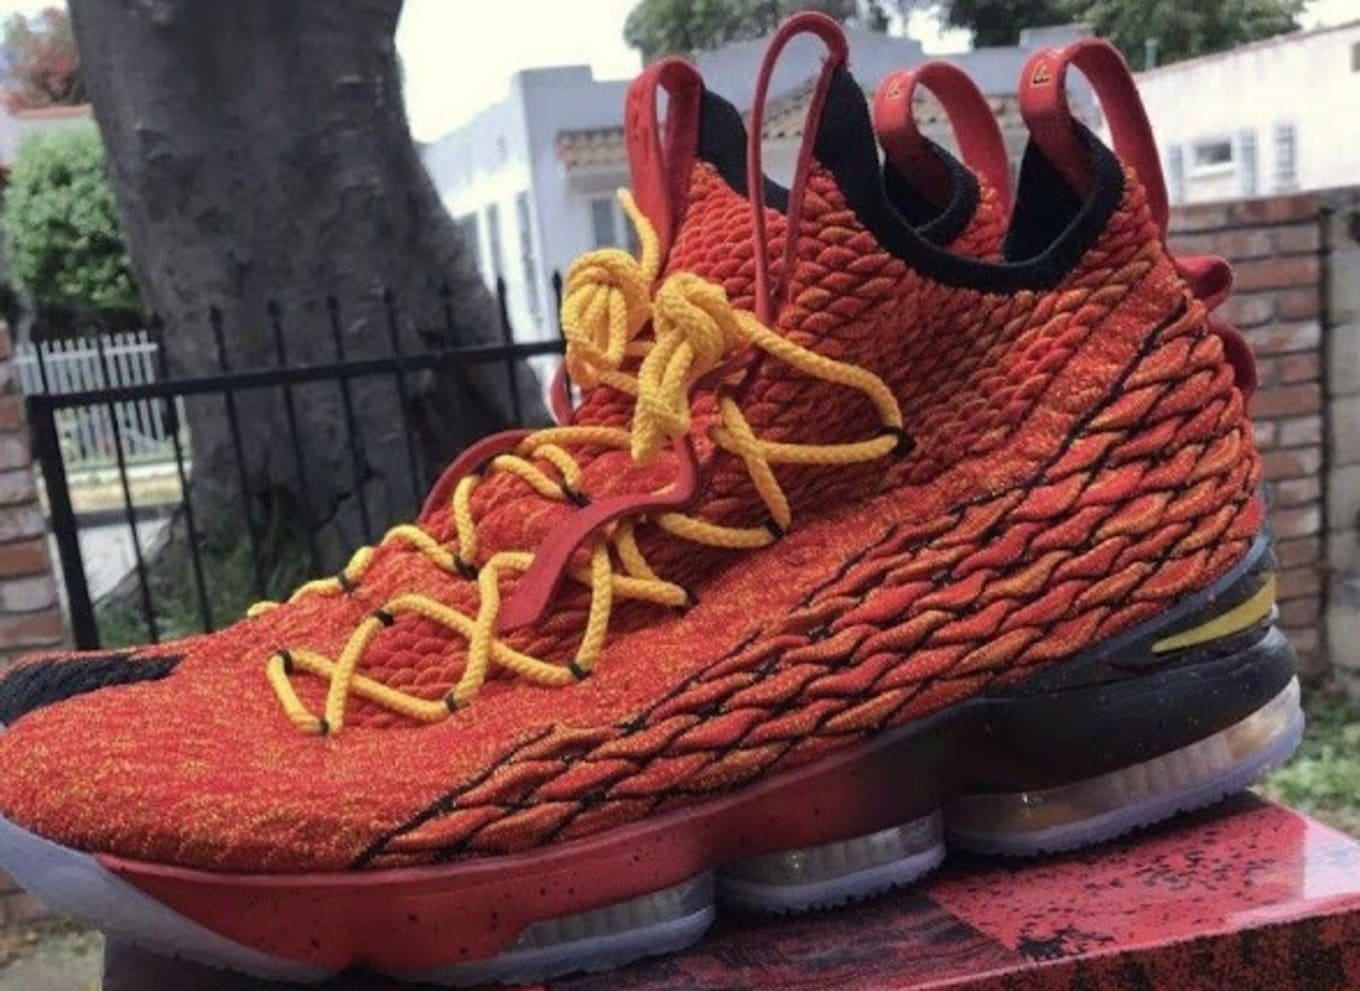 1cb4a227404 Nike LeBron 15  Fairfax Lions  Player Exclusive Sneakers